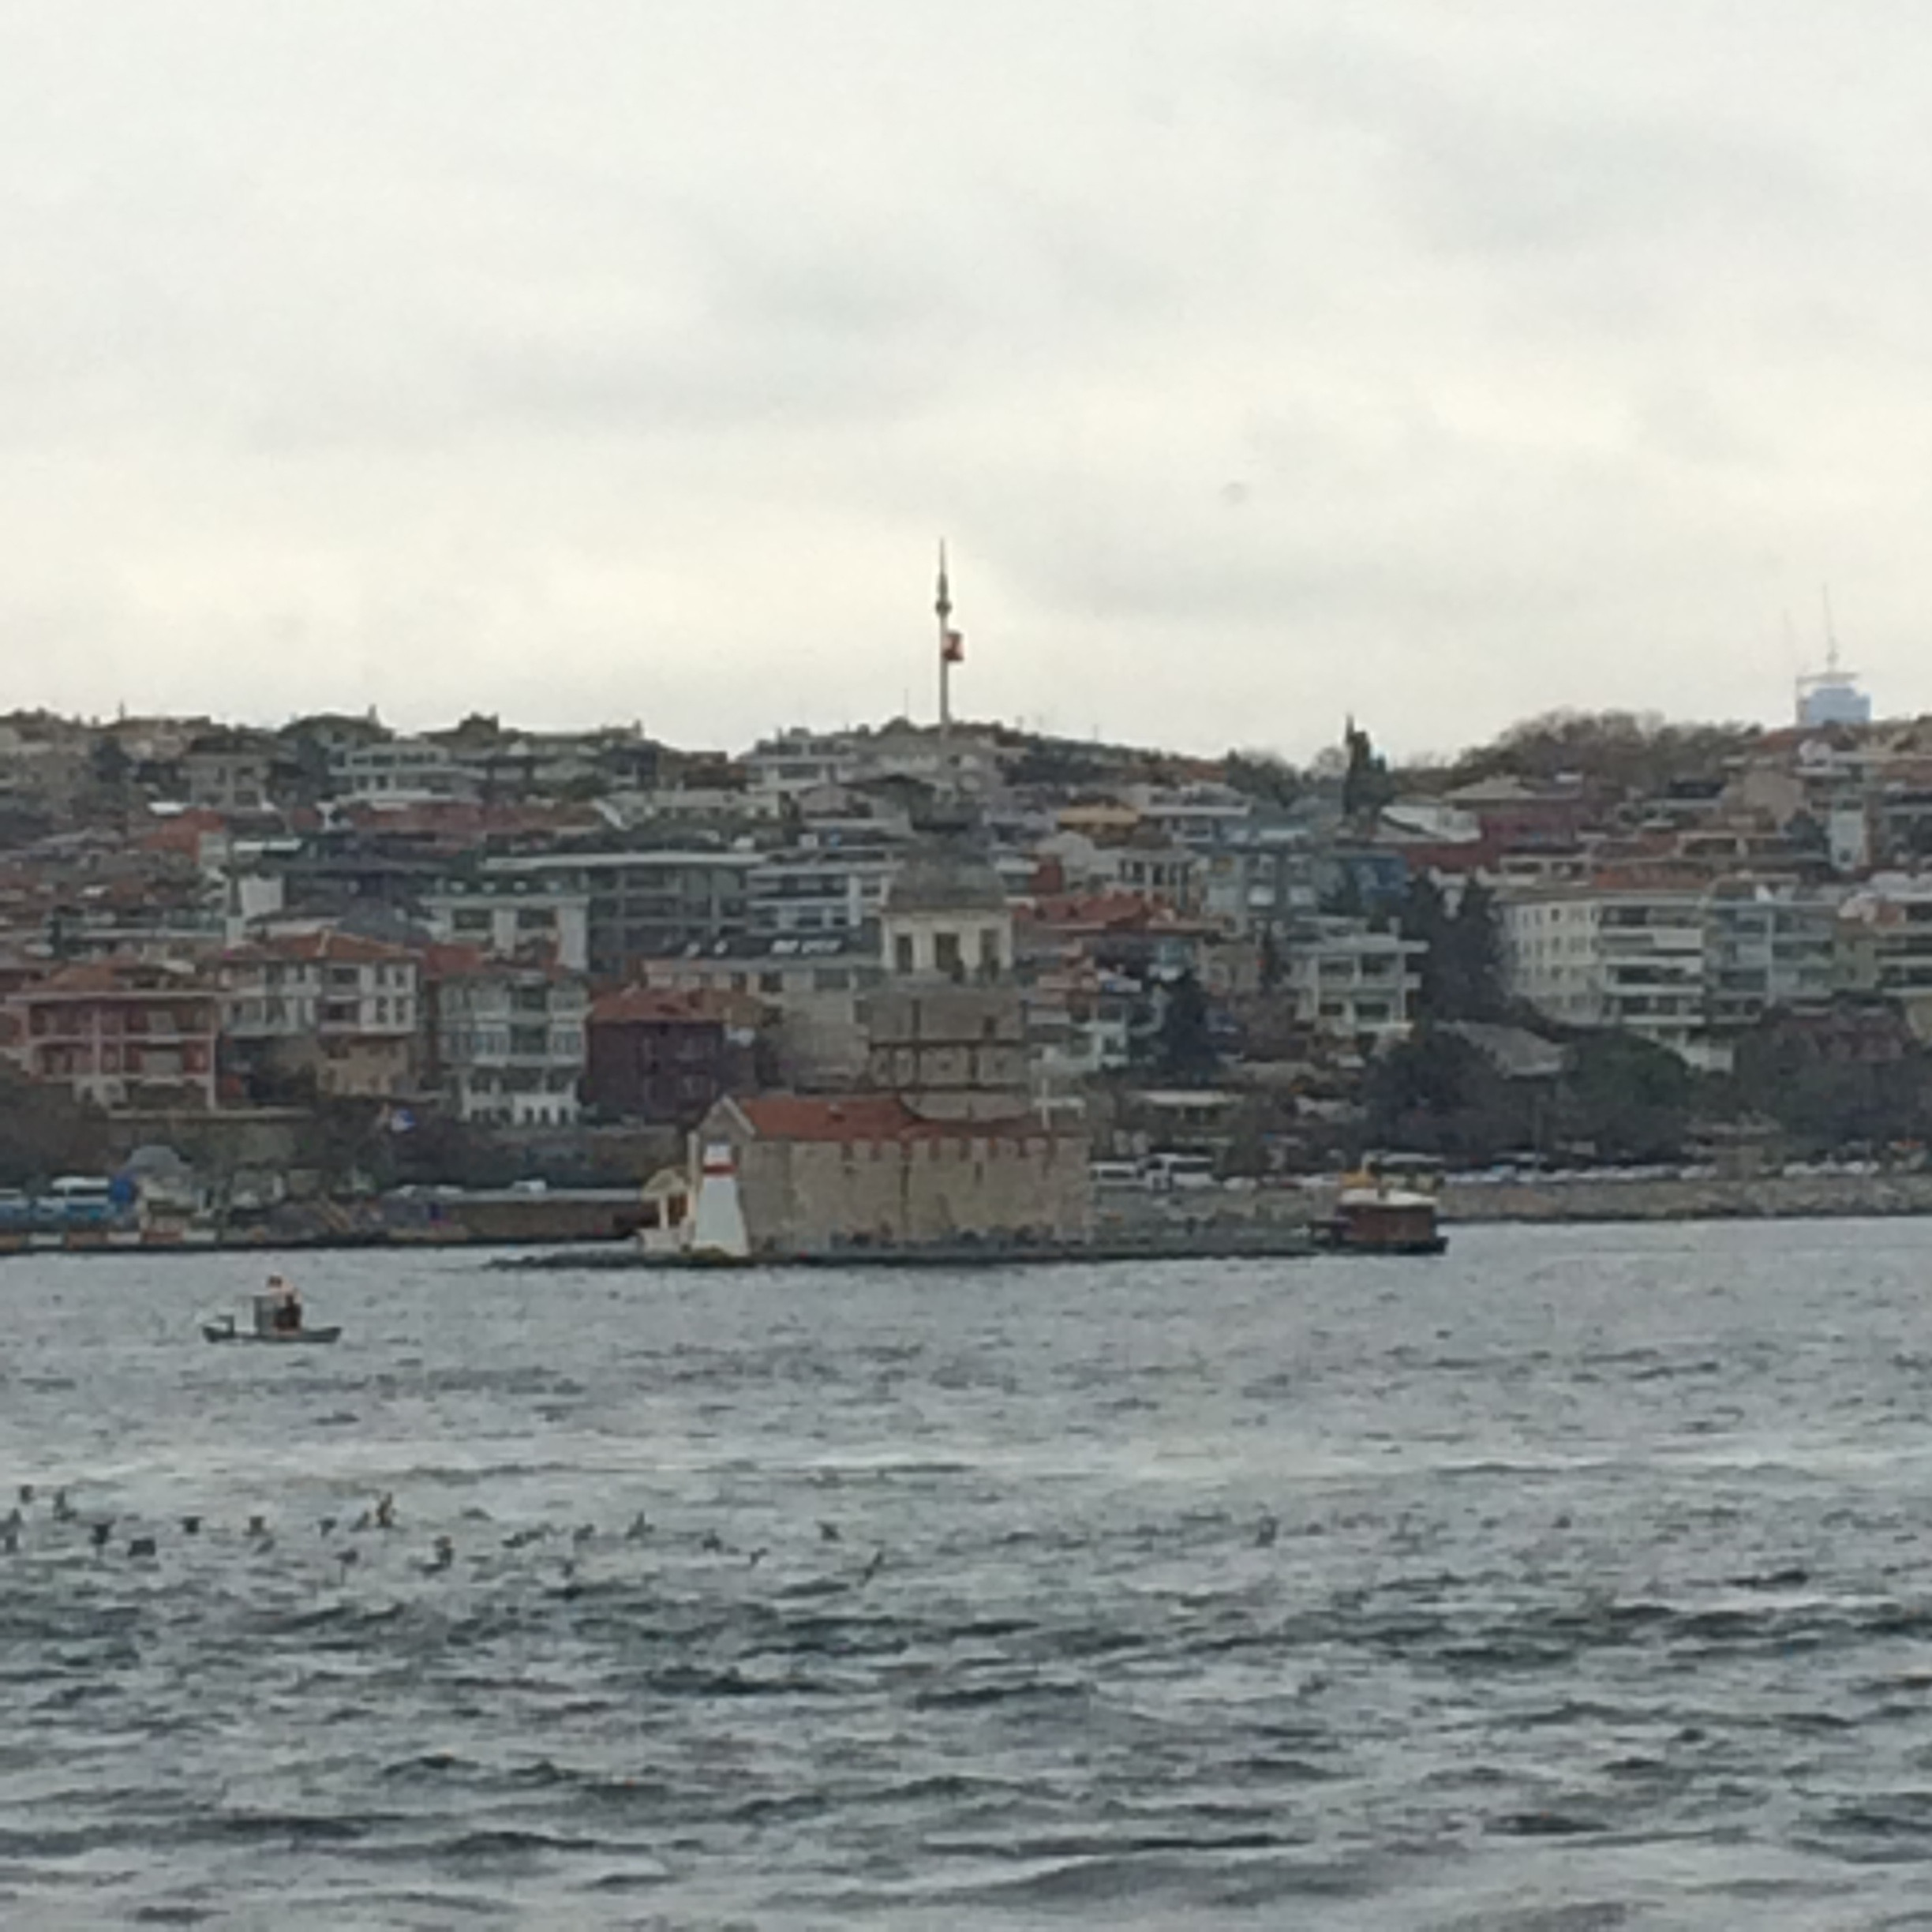 The Maiden's Tower.